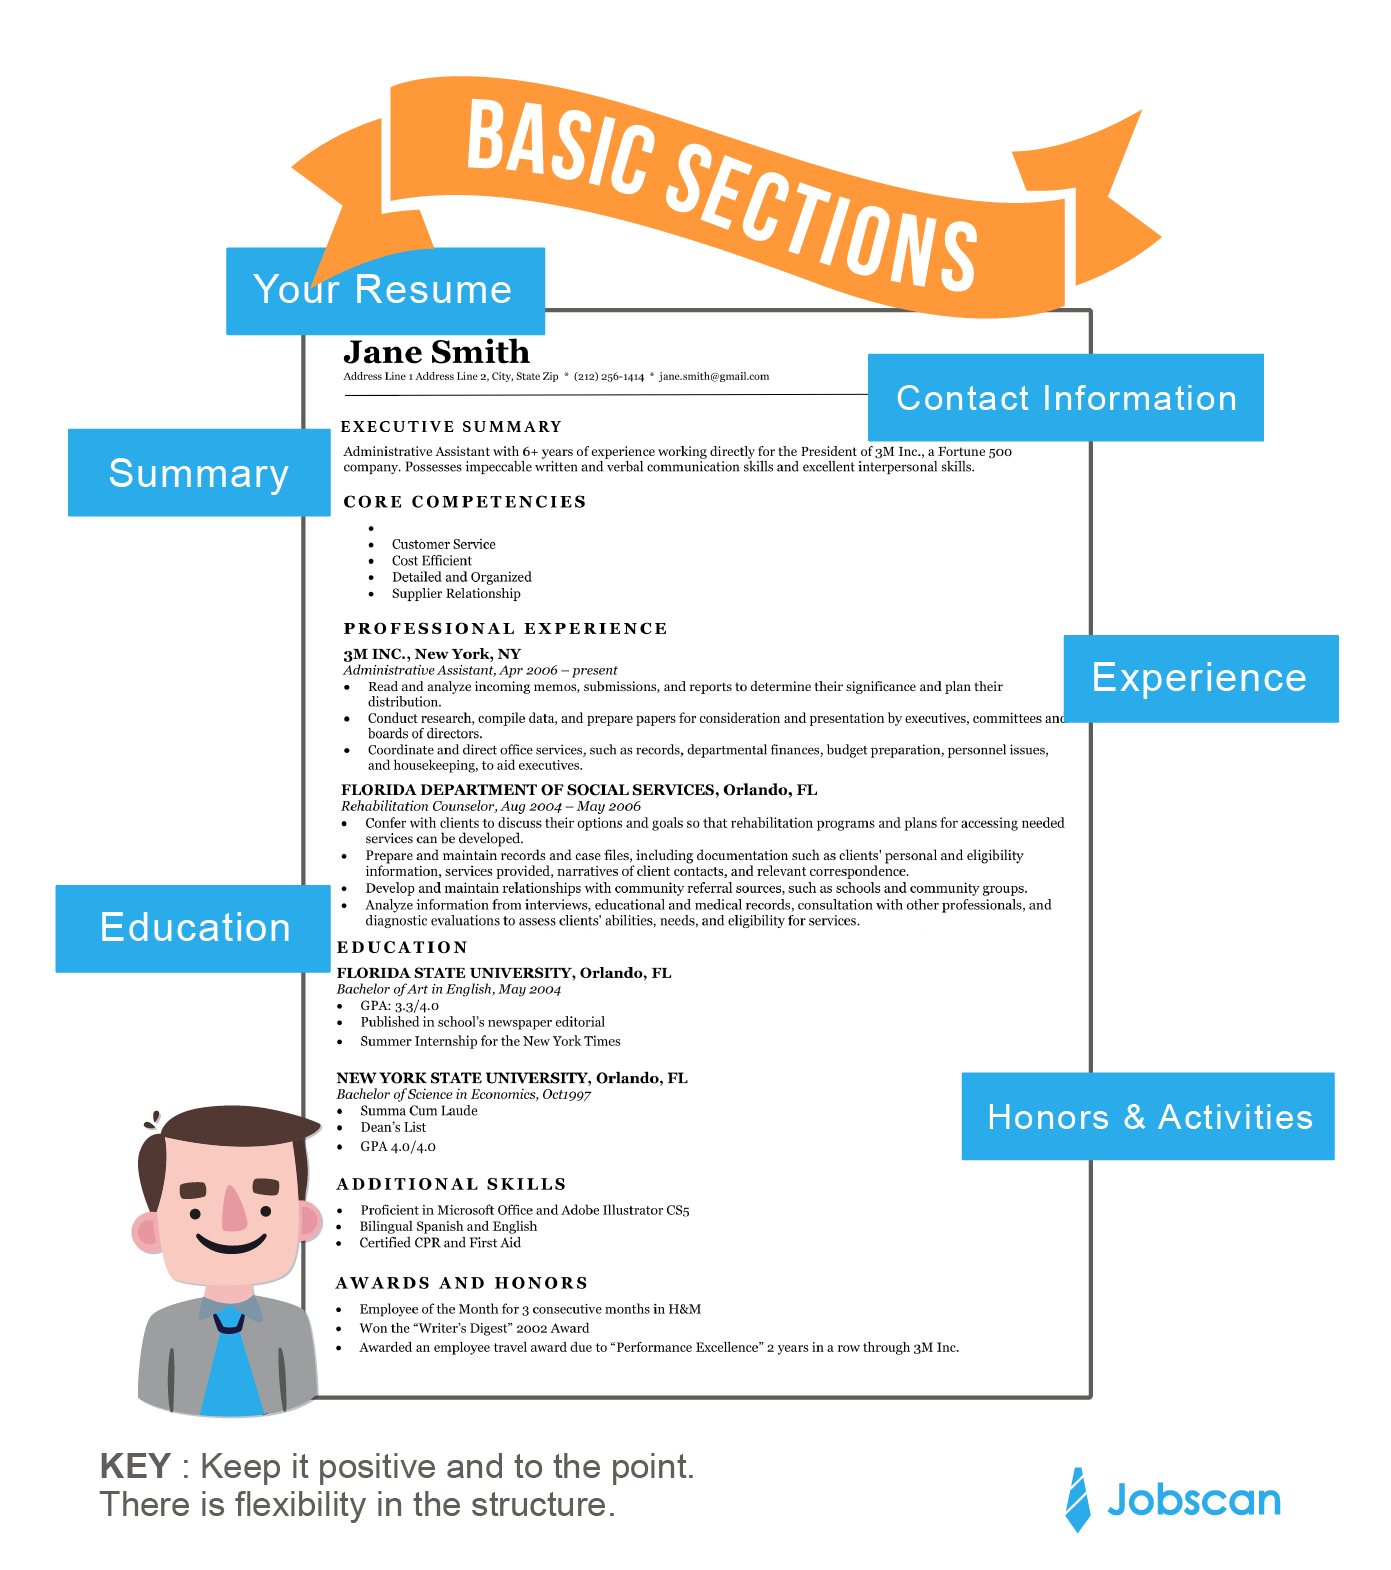 Copy Paste Resume Templates Obscan's Guide To Everything You Need To Know About Resumes